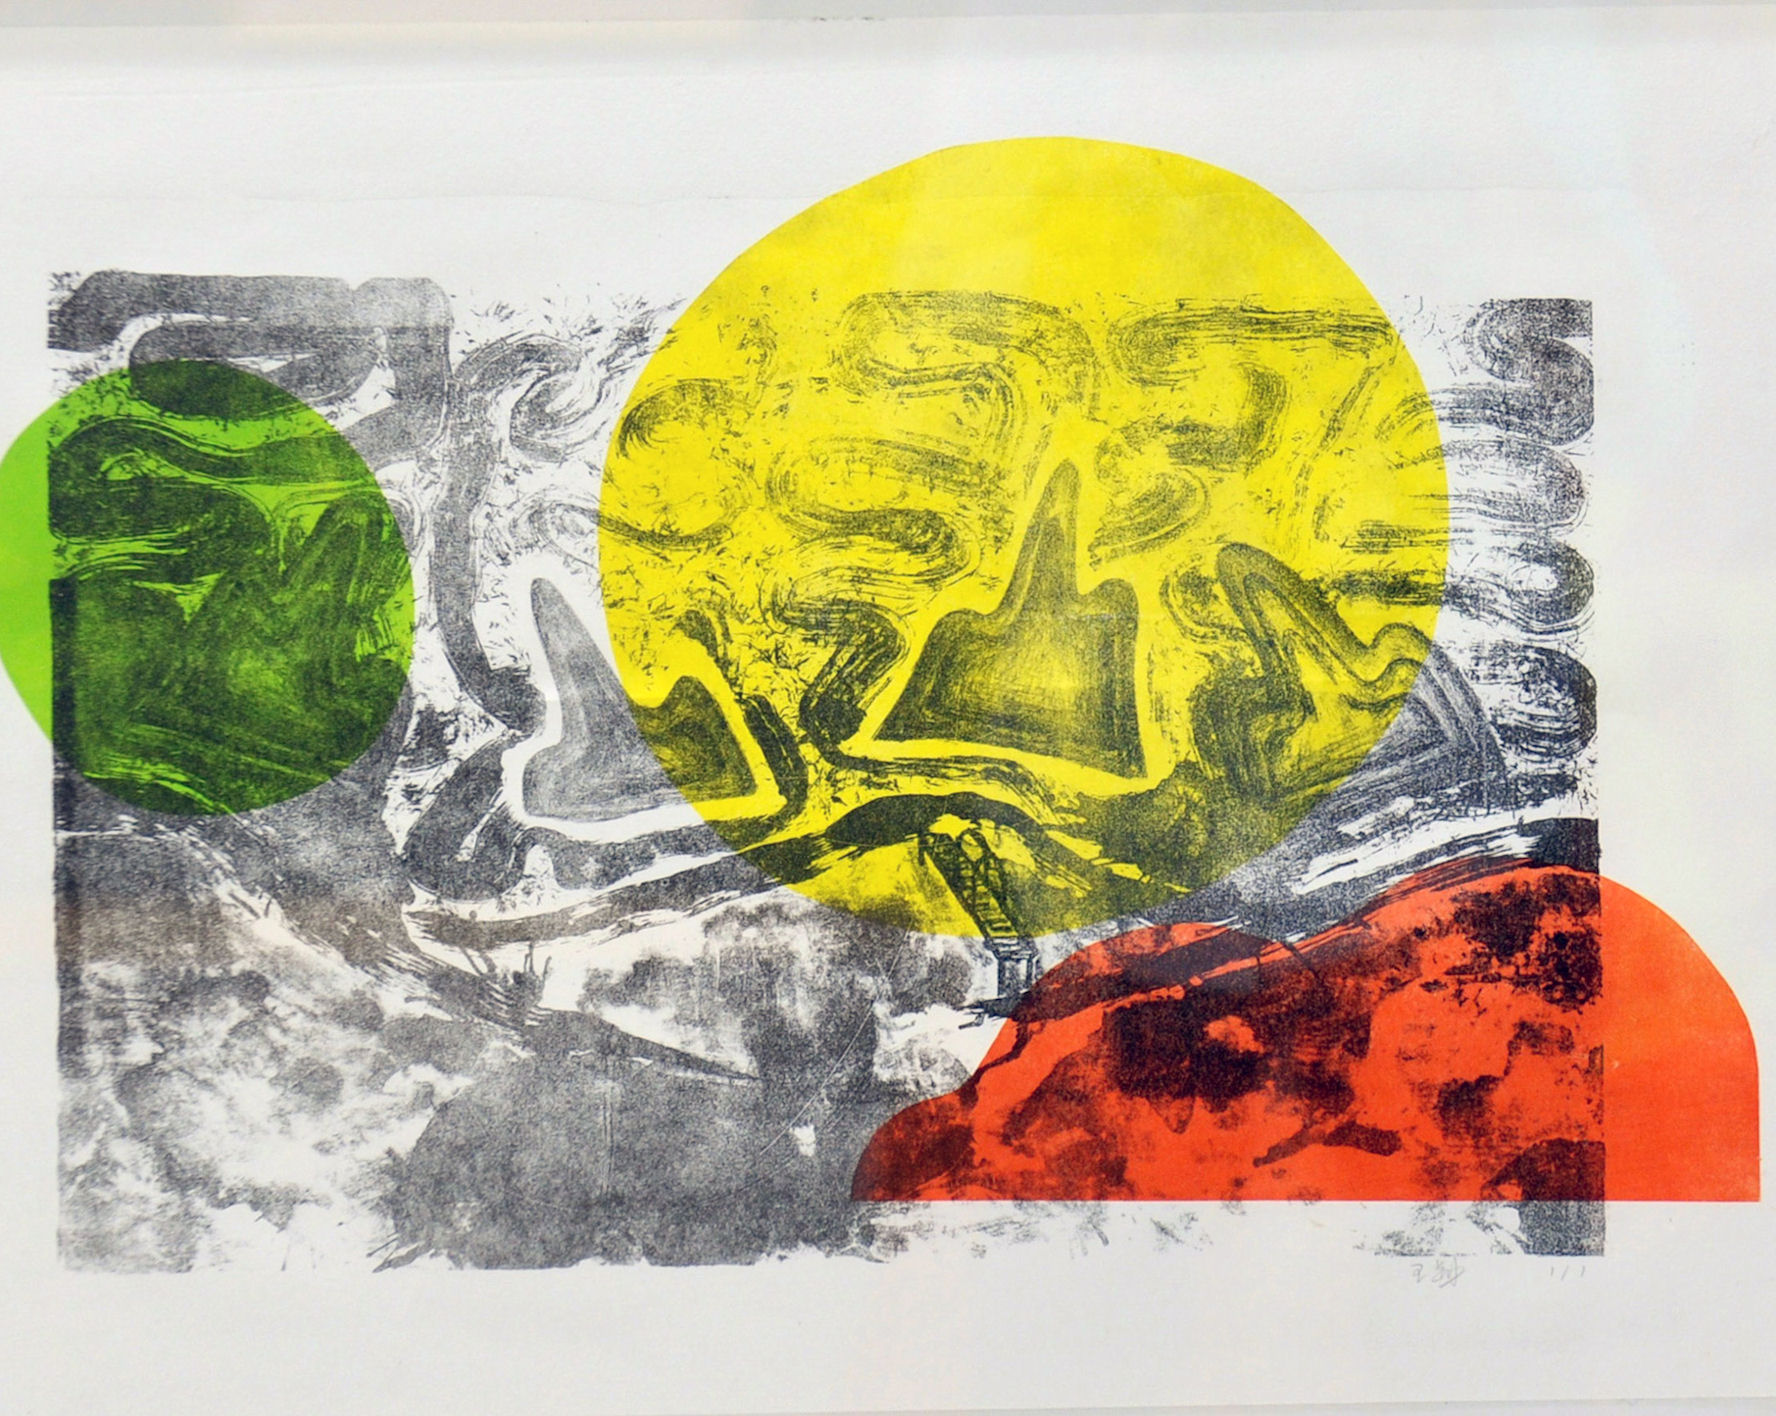 Chastèl Espectre, exposition de lithographies